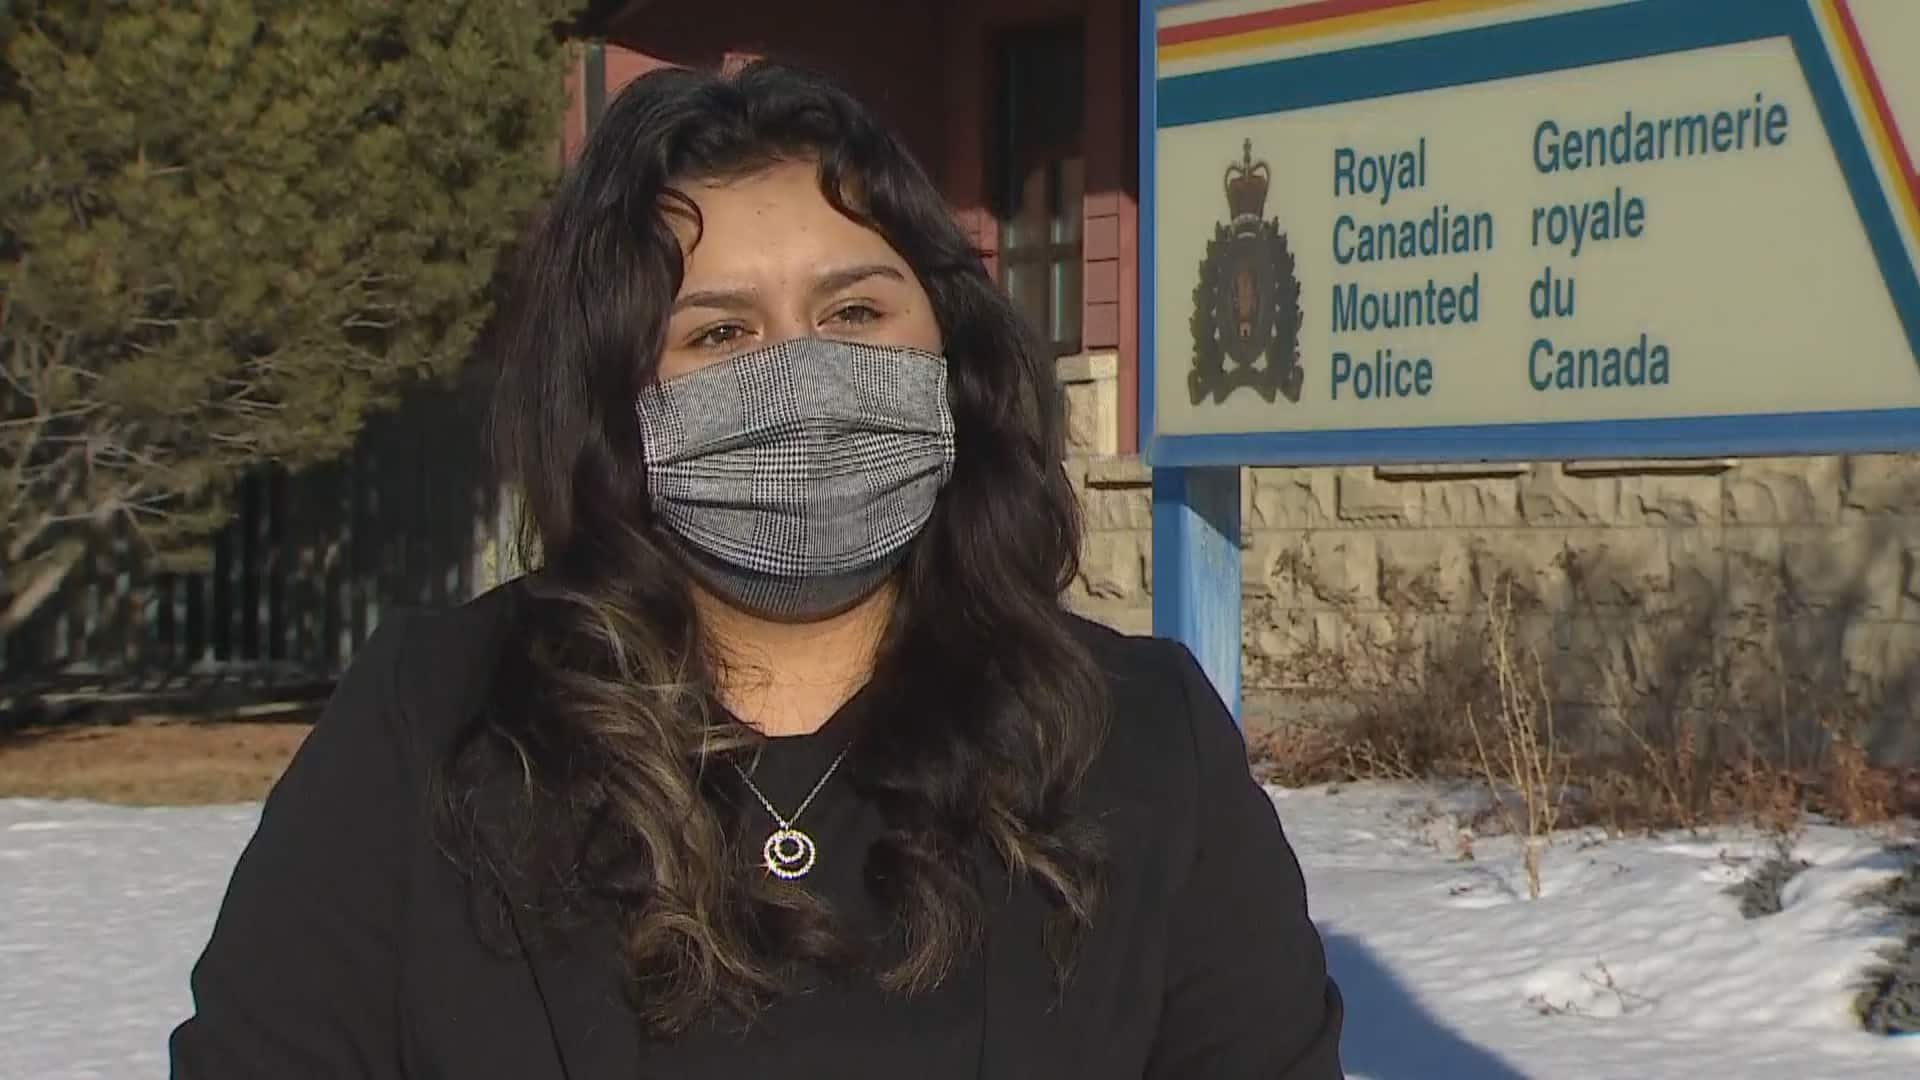 Ariana during an interview with CBC News outside of the RCMP detachment in High River, Alberta.